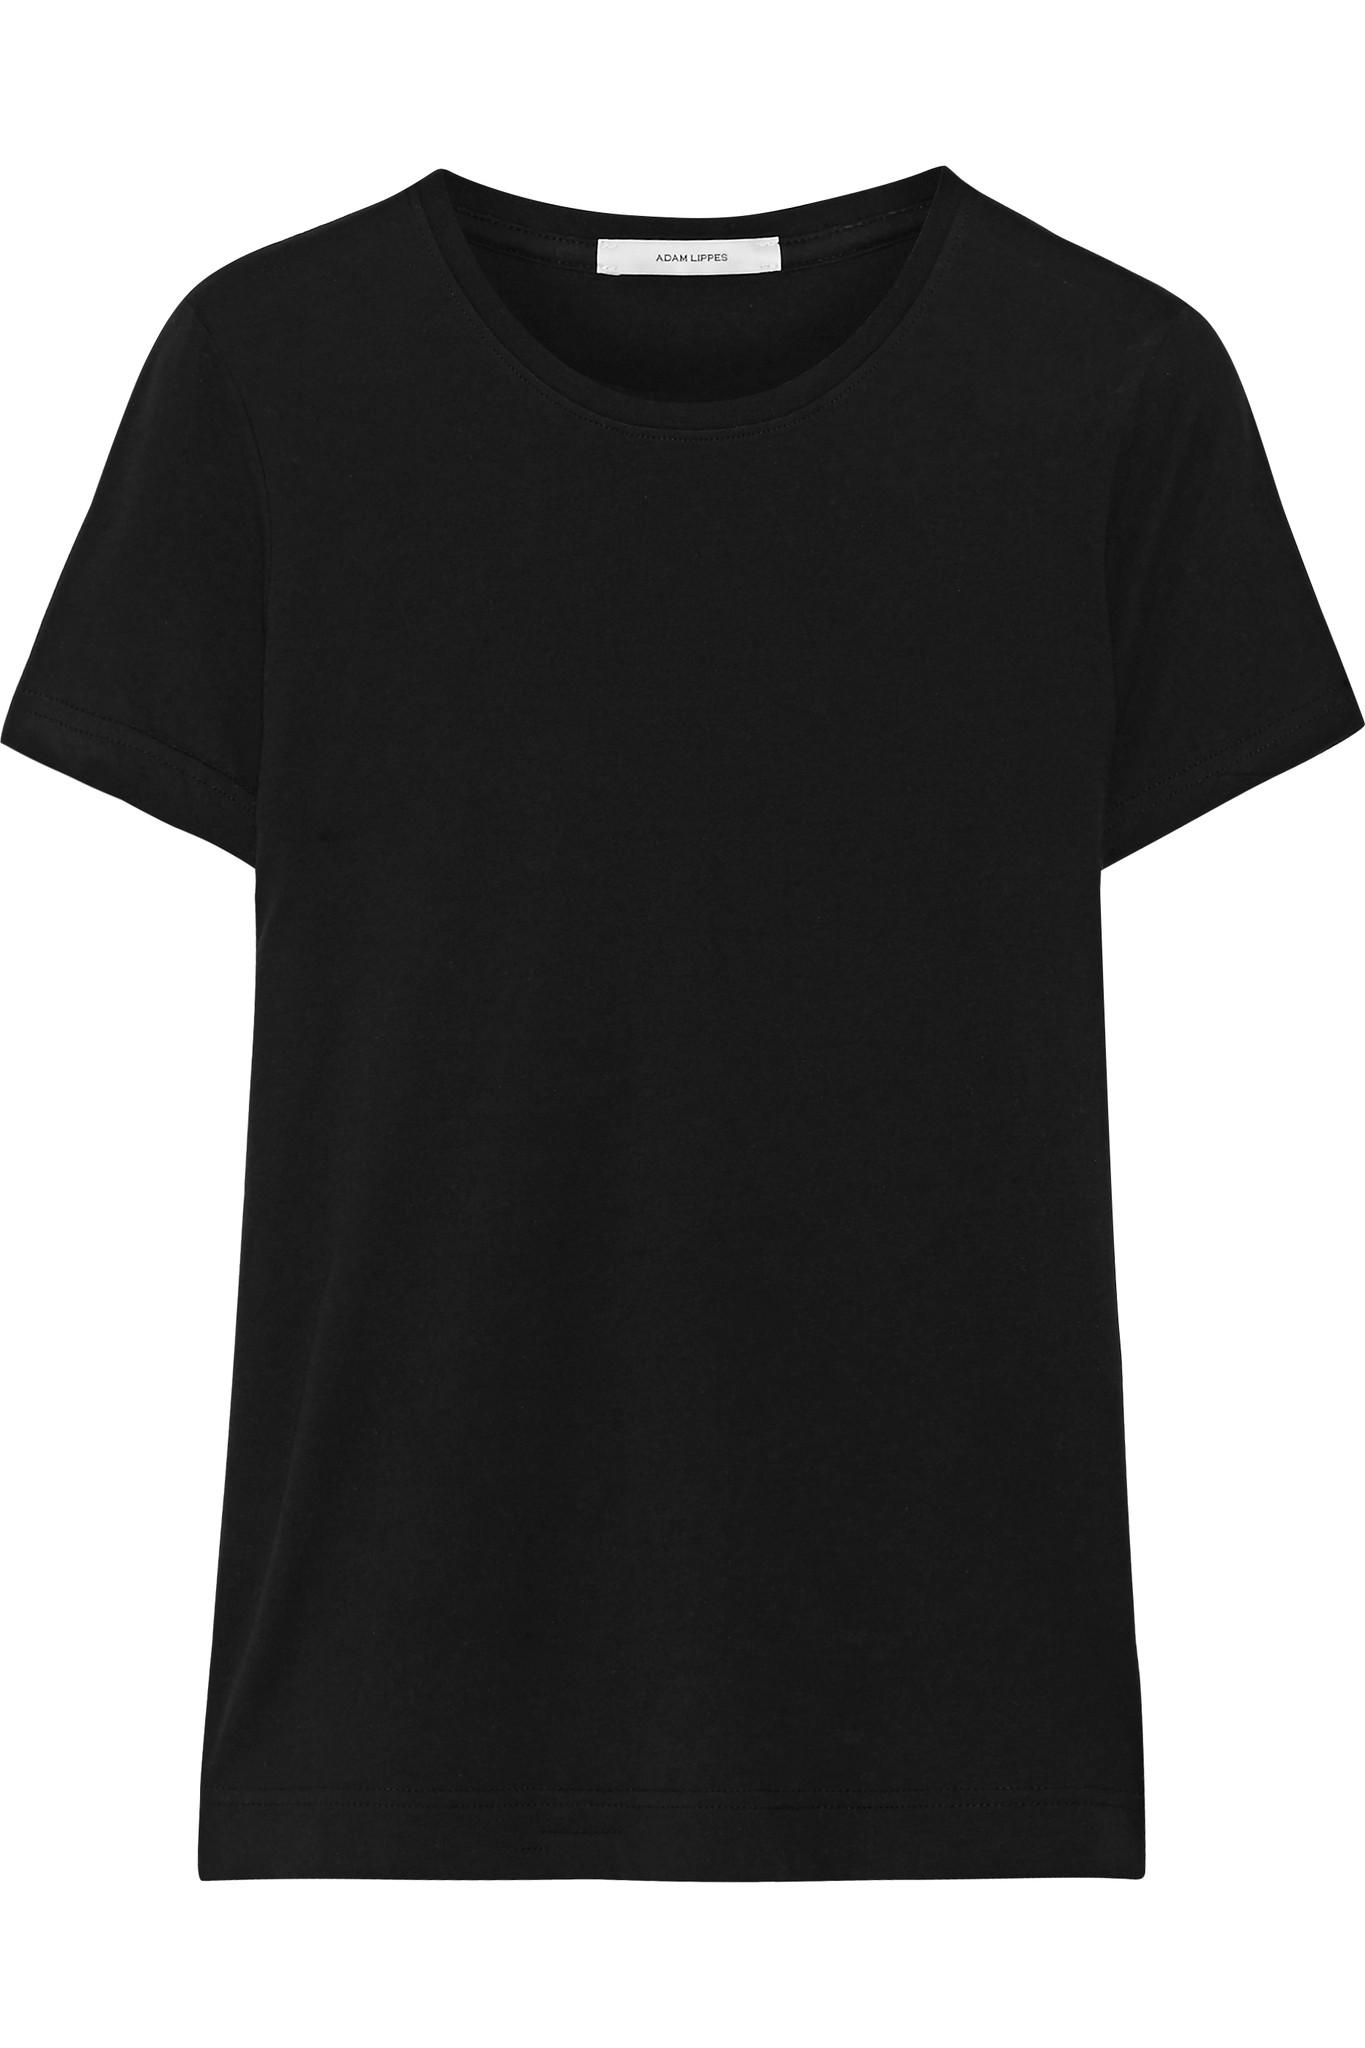 Adam lippes pima cotton t shirt in black lyst for Adam lippes t shirt